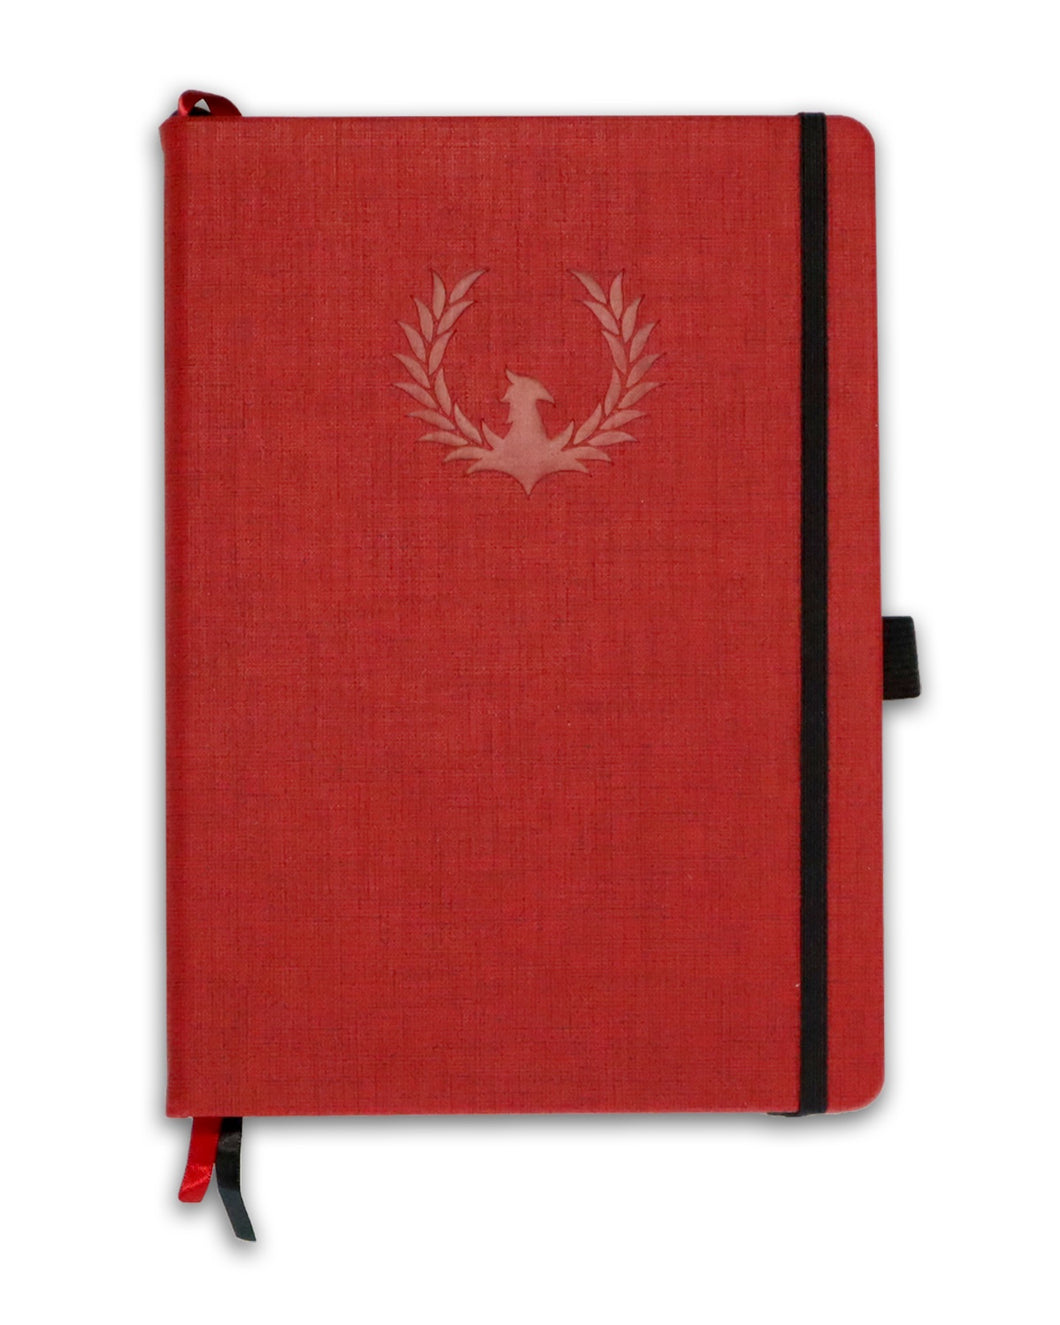 The Phoenix Journal